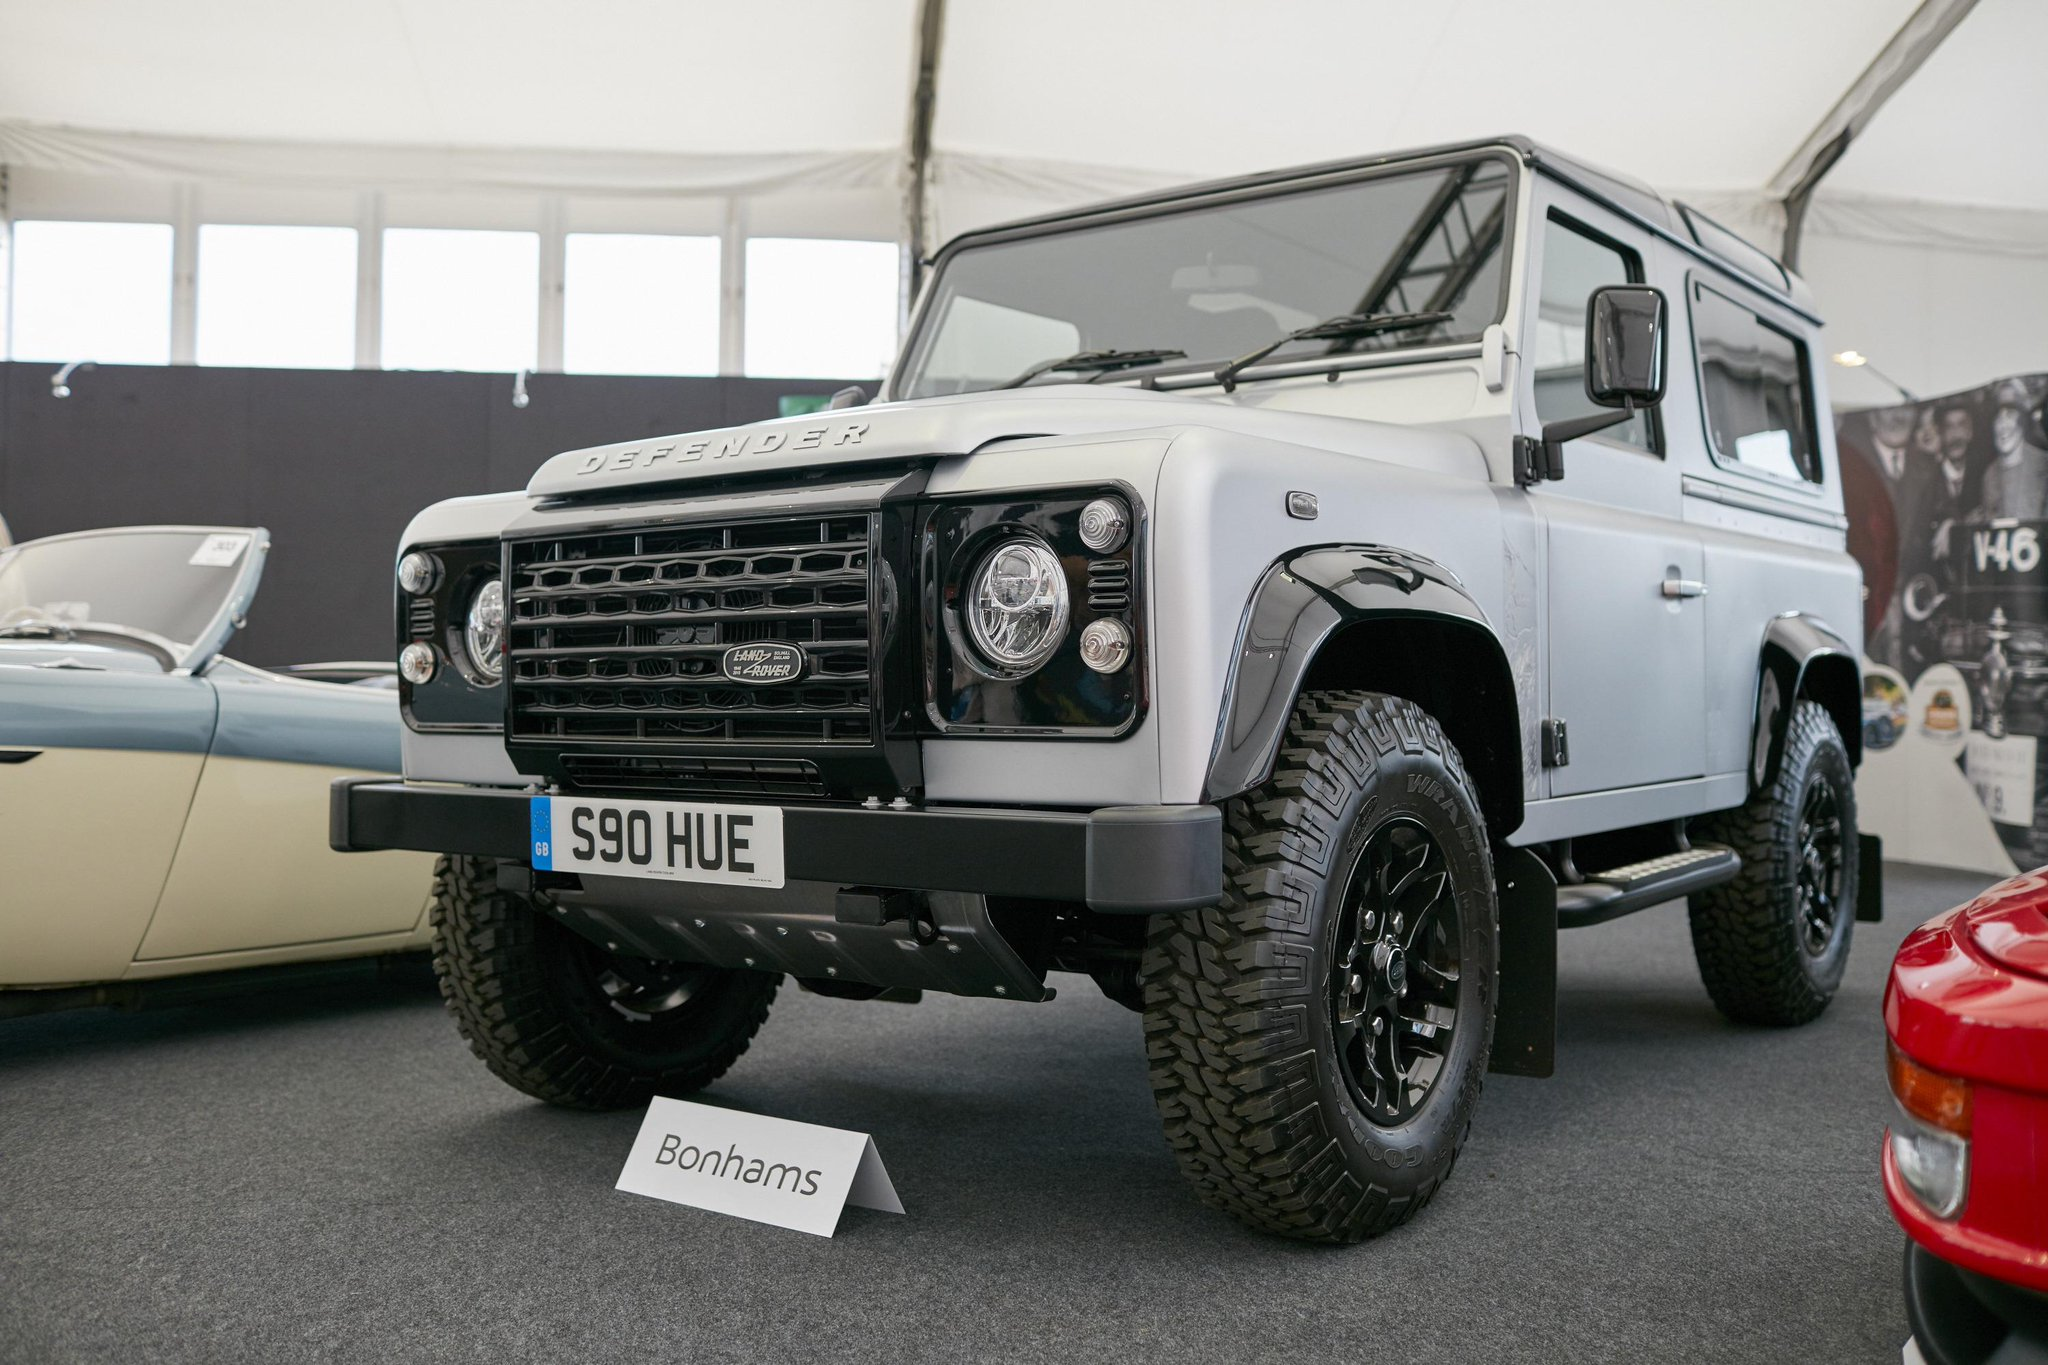 The 2,000,000th Defender is at @Bonhams1793's #GoodwoodRevival stand. Proceeds from its auction will go to charities. http://t.co/clmJCYBRYD